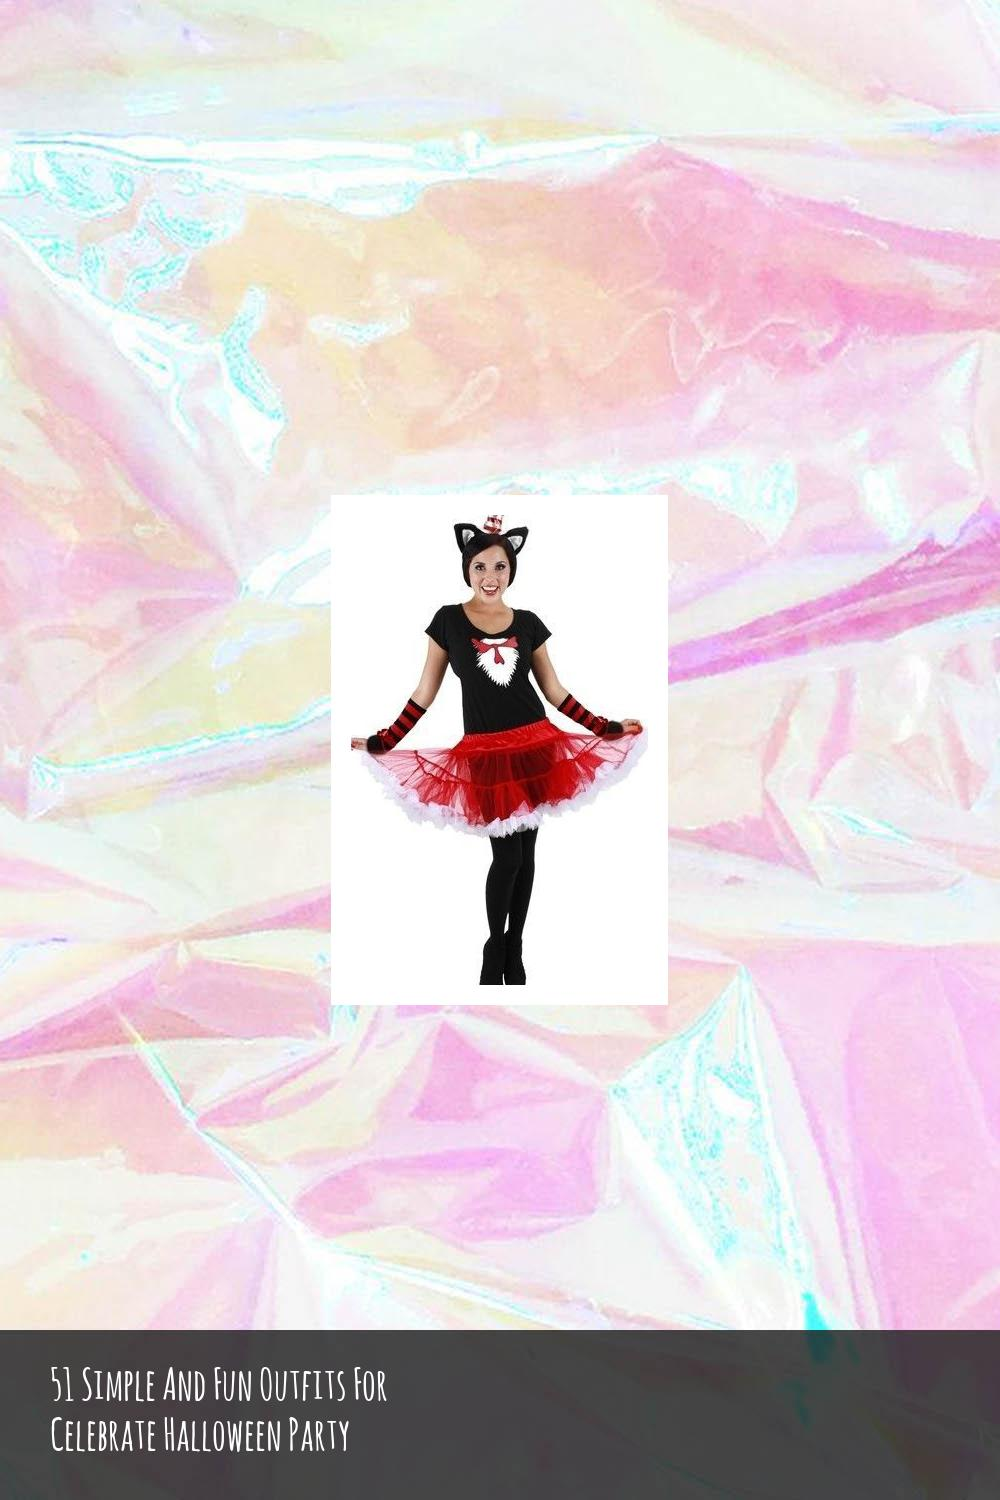 51 Simple And Fun Outfits For Celebrate Halloween Party 37